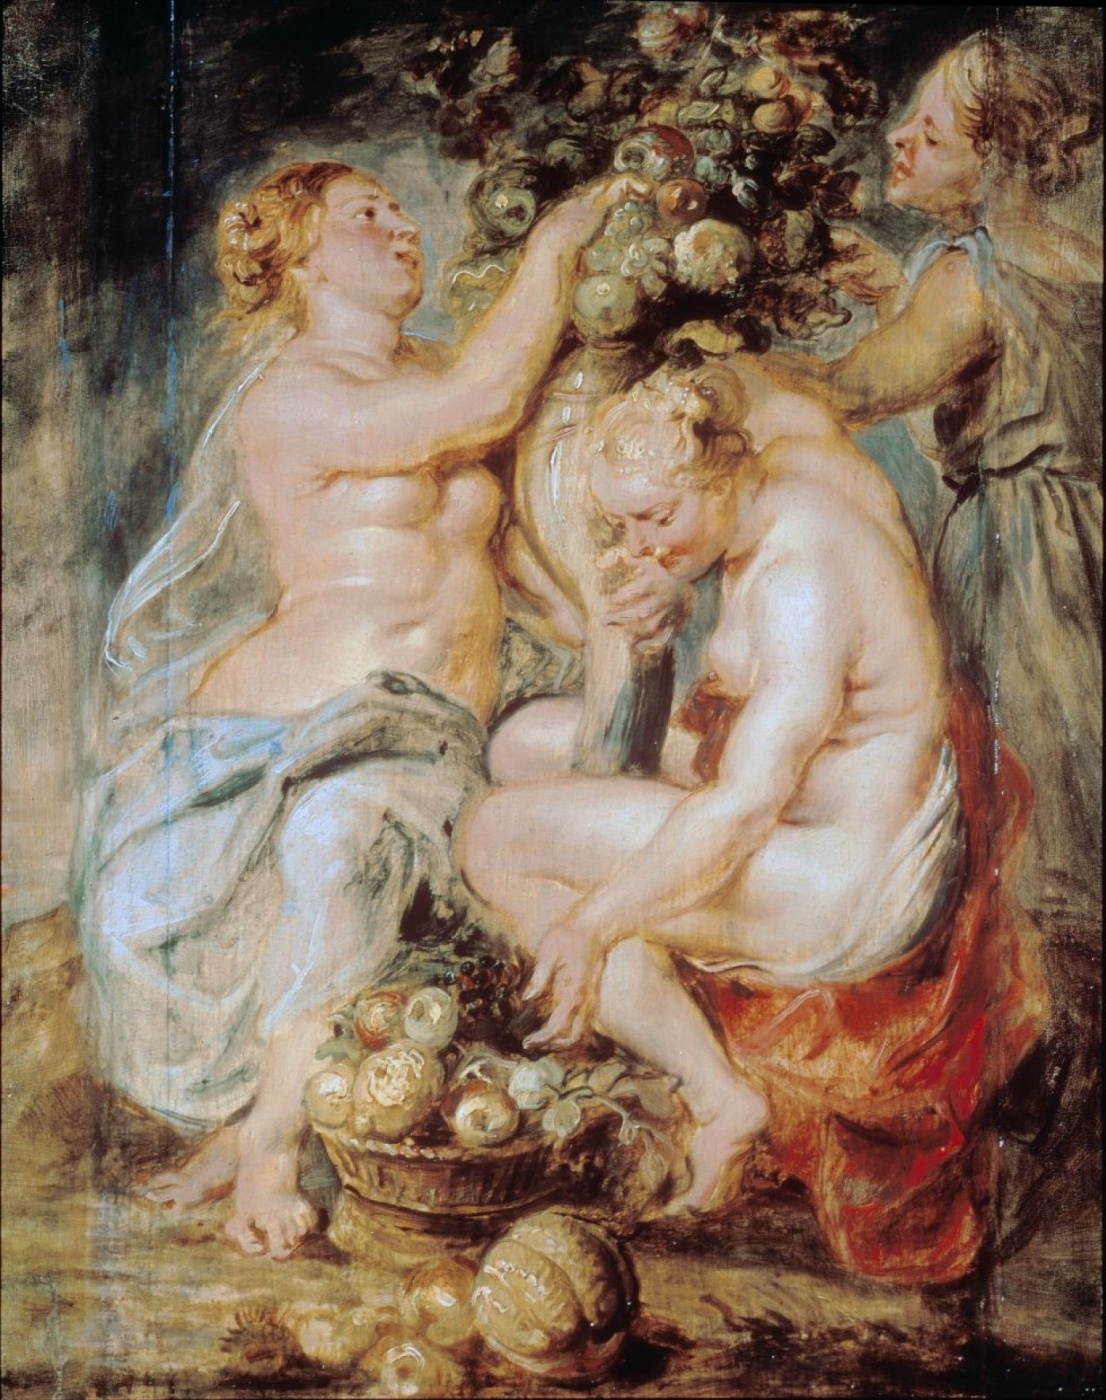 Peter Paul Rubens. Three Nymphs with the Horn of Plenty